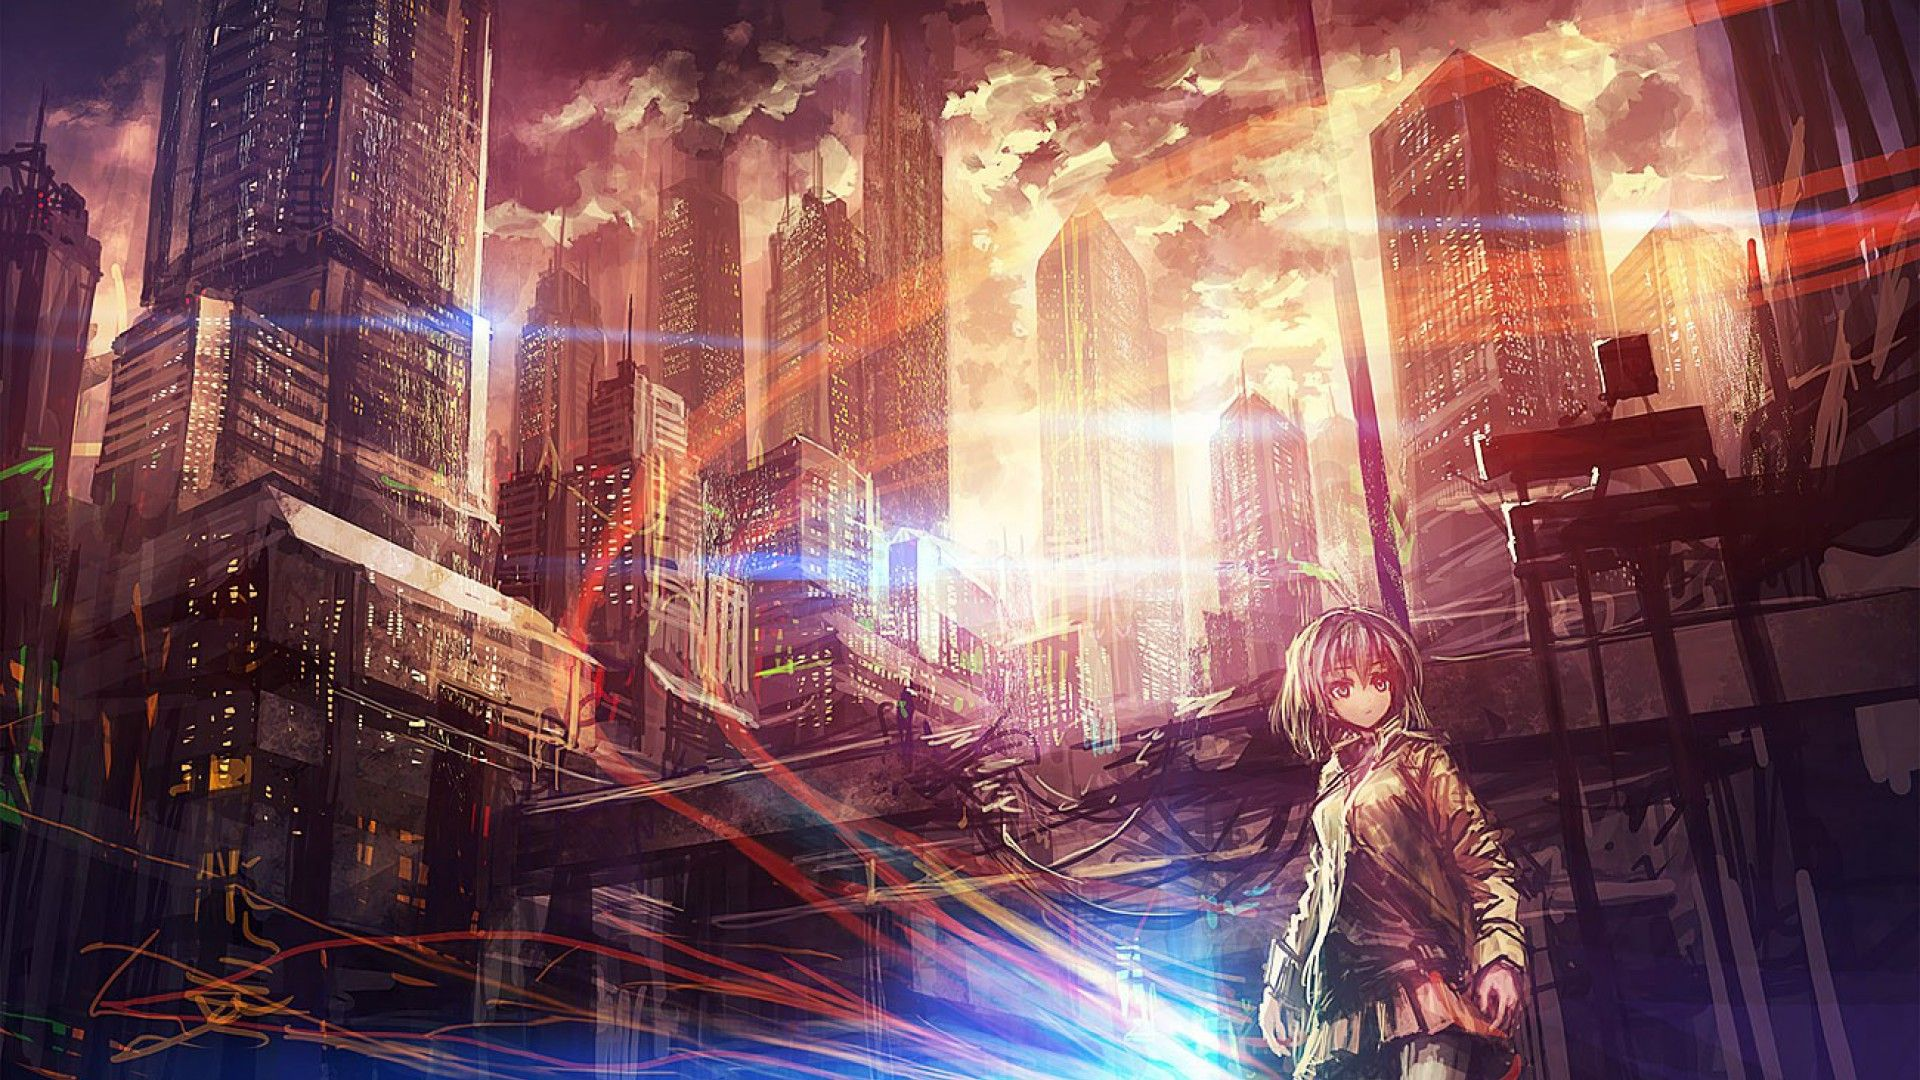 Page 97 High Quality Wallpaper Collections For Desktop And Mobile Anime Scenery Wallpaper Anime Scenery Scenery Wallpaper